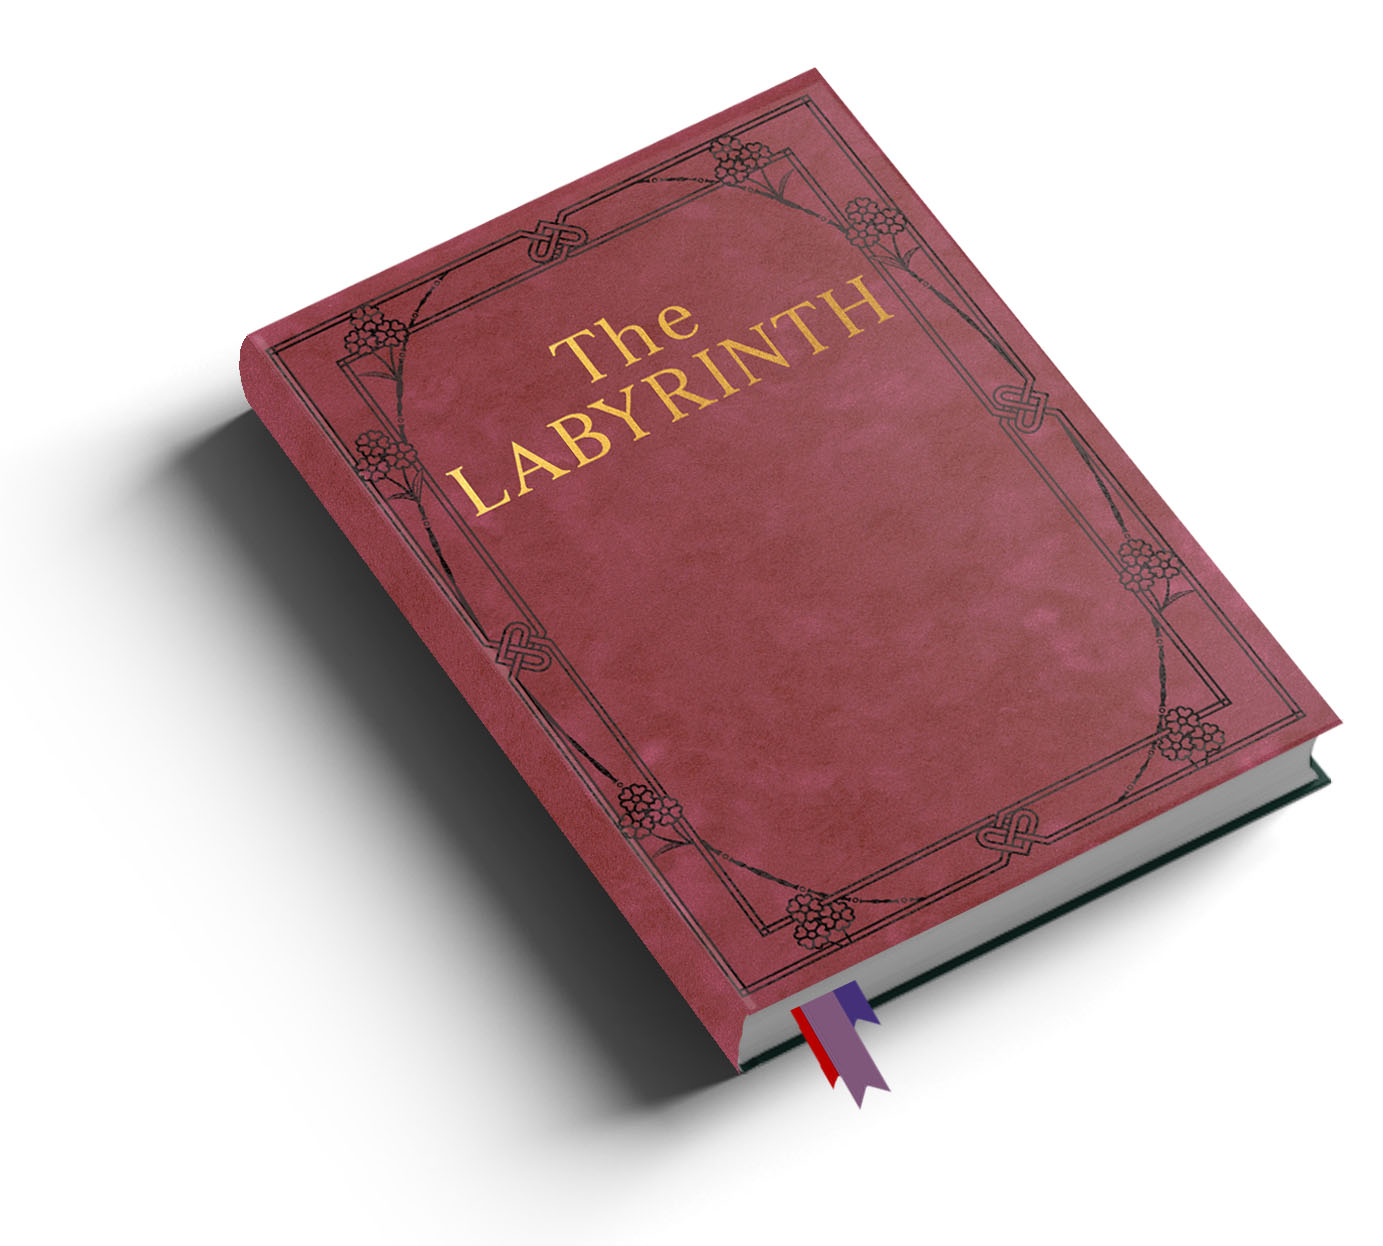 Mock up of Jim Henson's Labyrinth the Adventure Game by River Horse